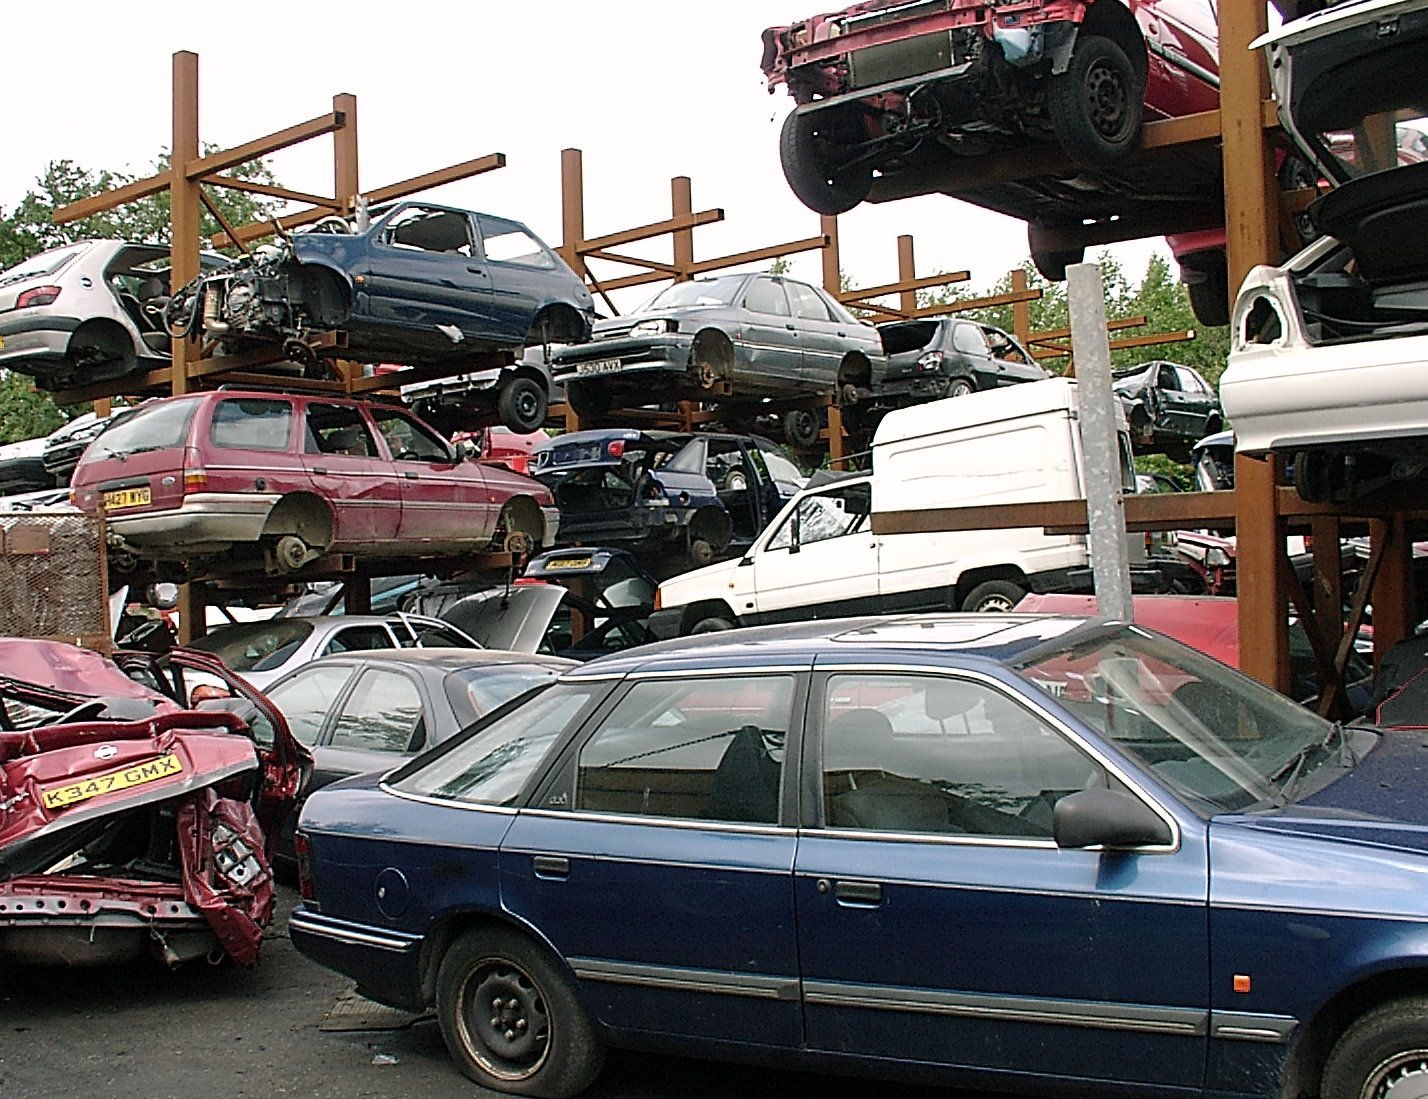 File:Scrap yard 22l3.JPG - Wikimedia Commons